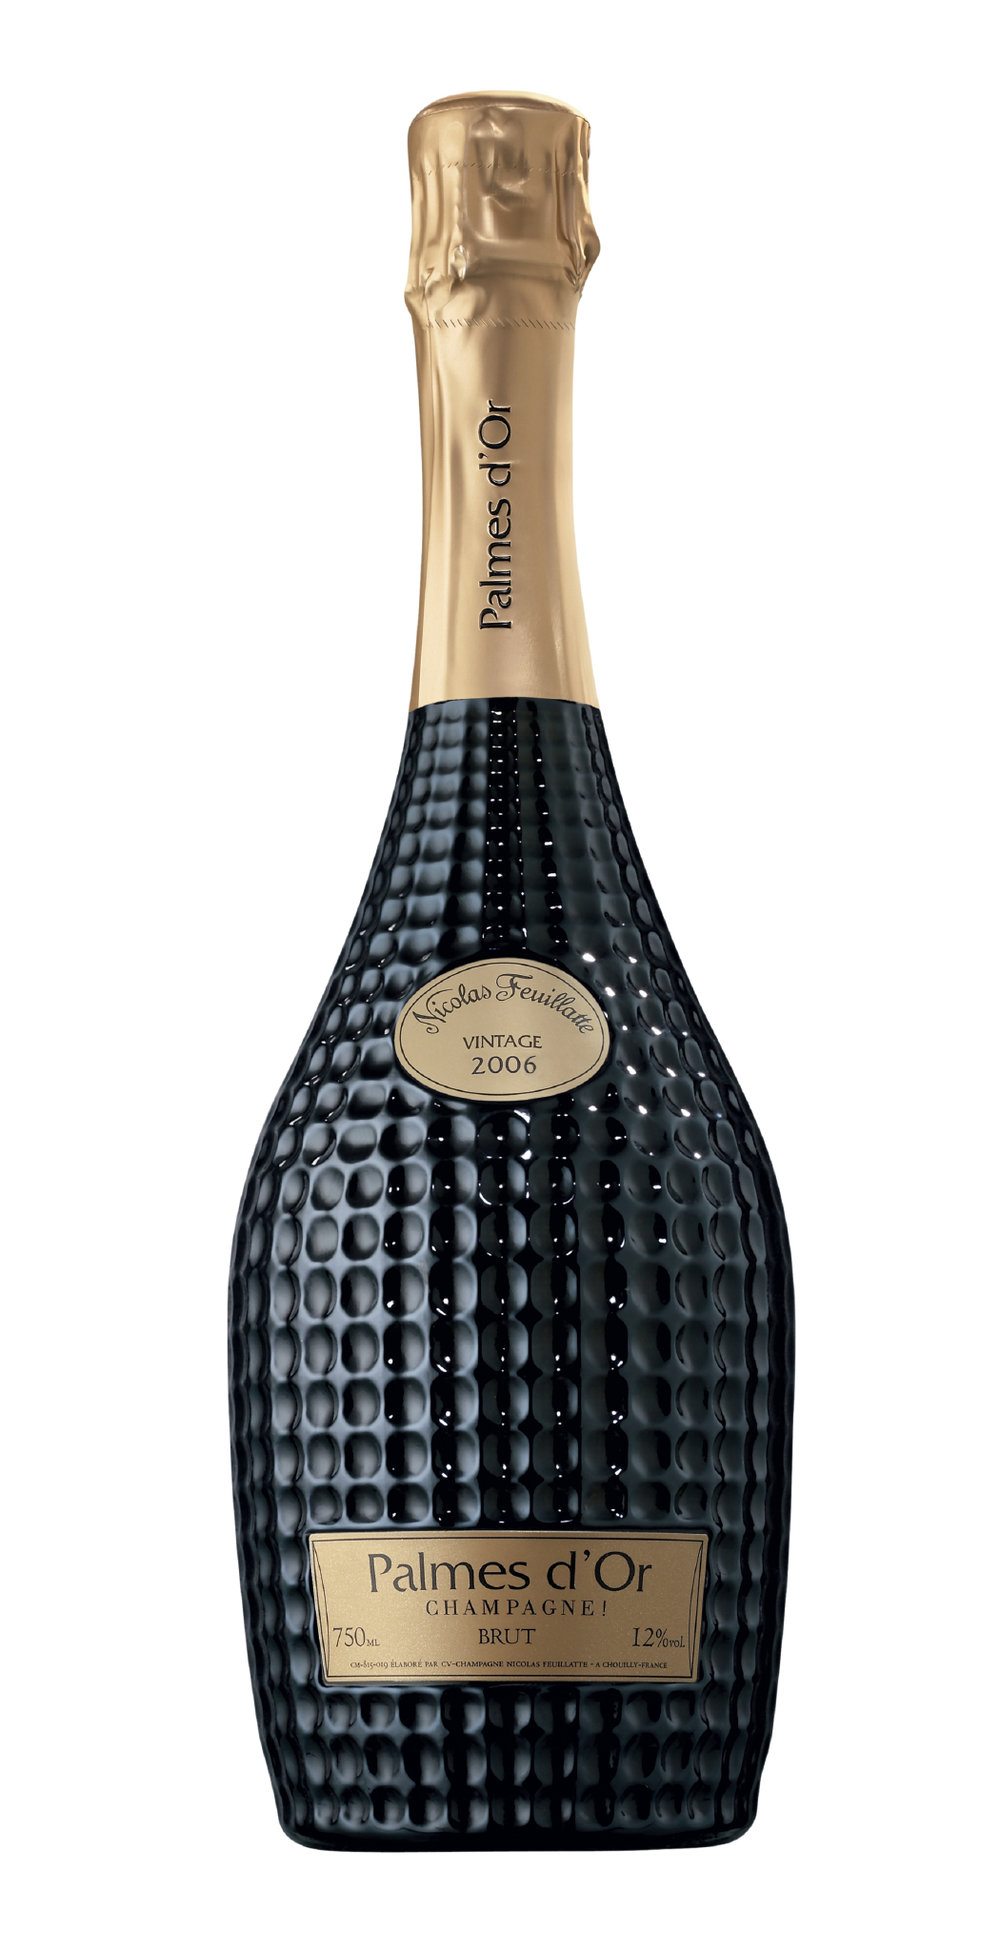 Champagne Nicolas Feuillatte's Palmes d'Or